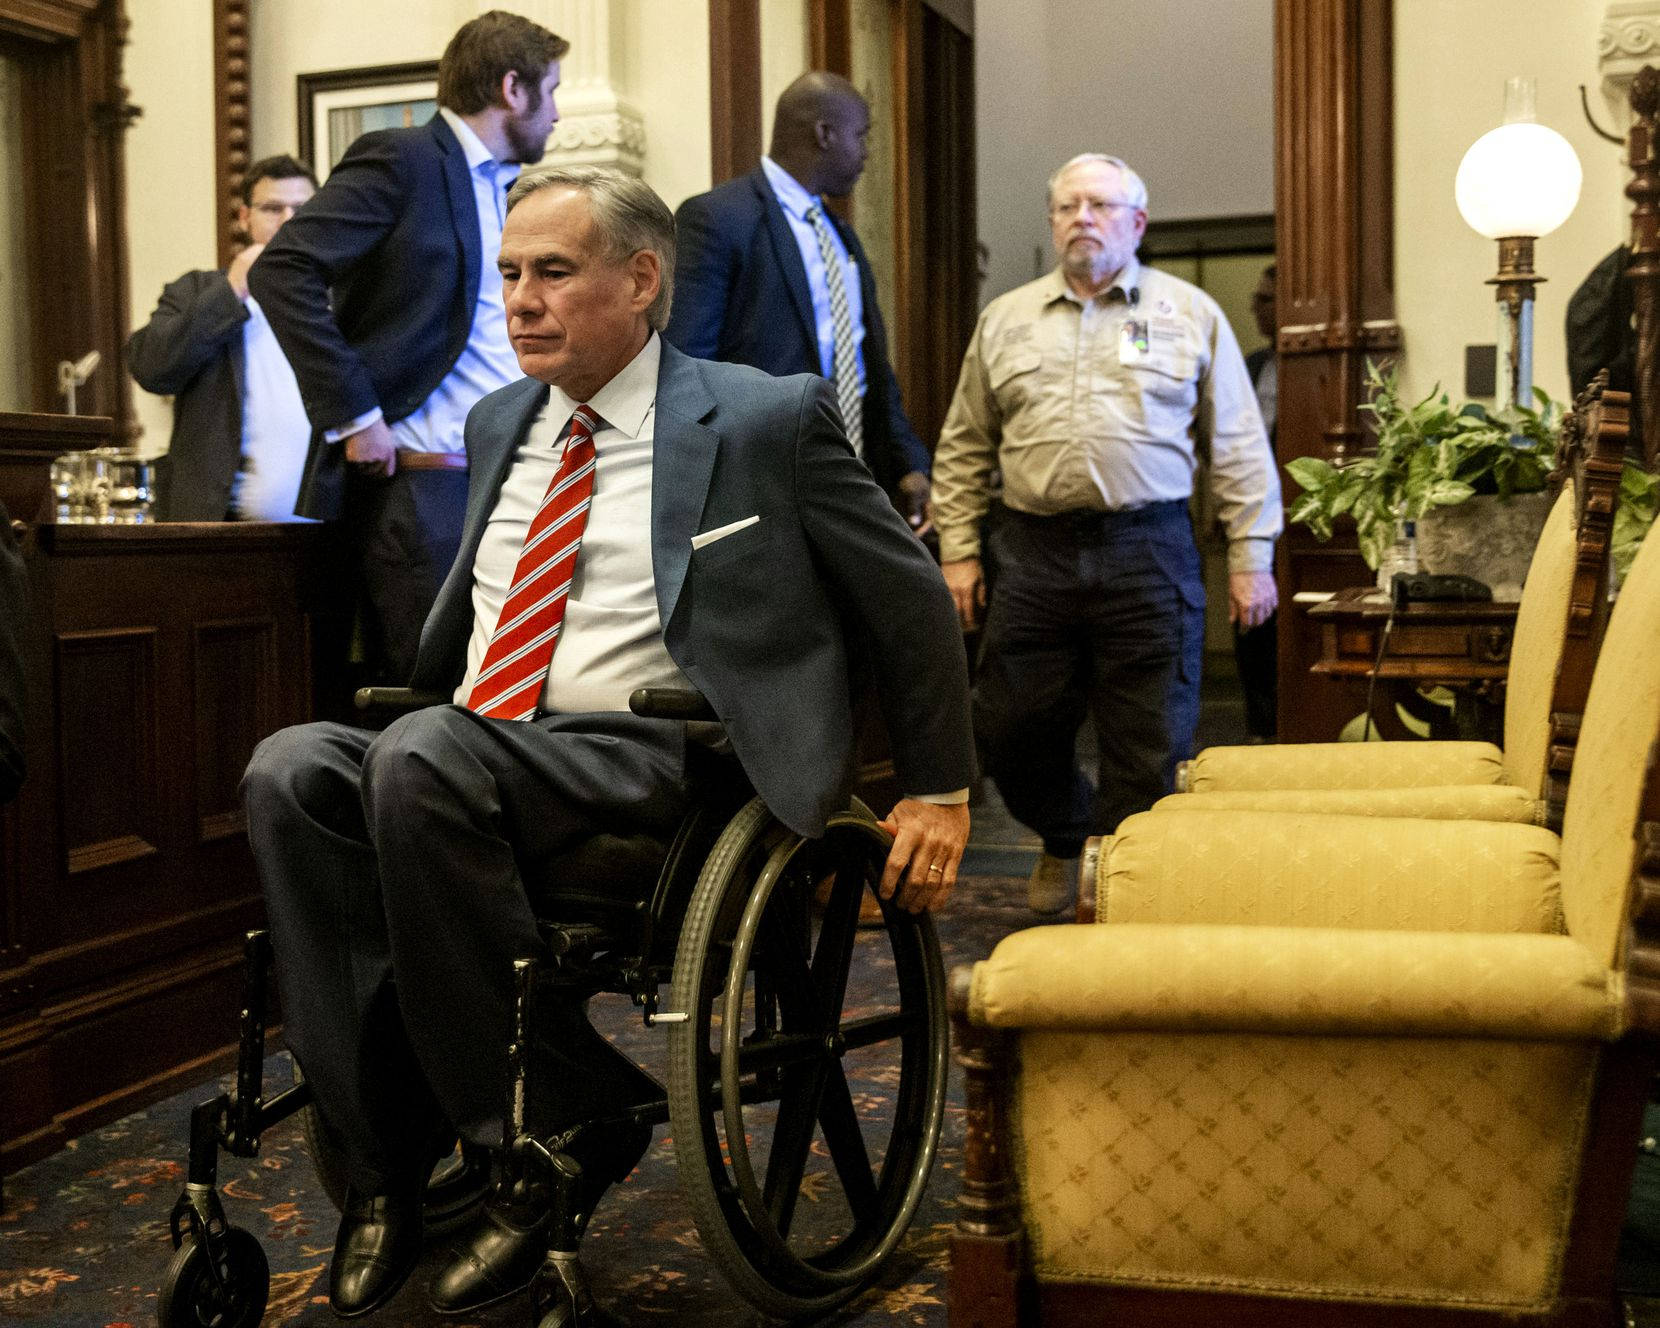 Gov. Greg Abbott, shown entering a May 18 news conference, is using his broad popularity among Republican voters and potent campaign organization to try to propel three state or county-level candidates past rivals associated with Empower Texans in the July 14 runoffs.